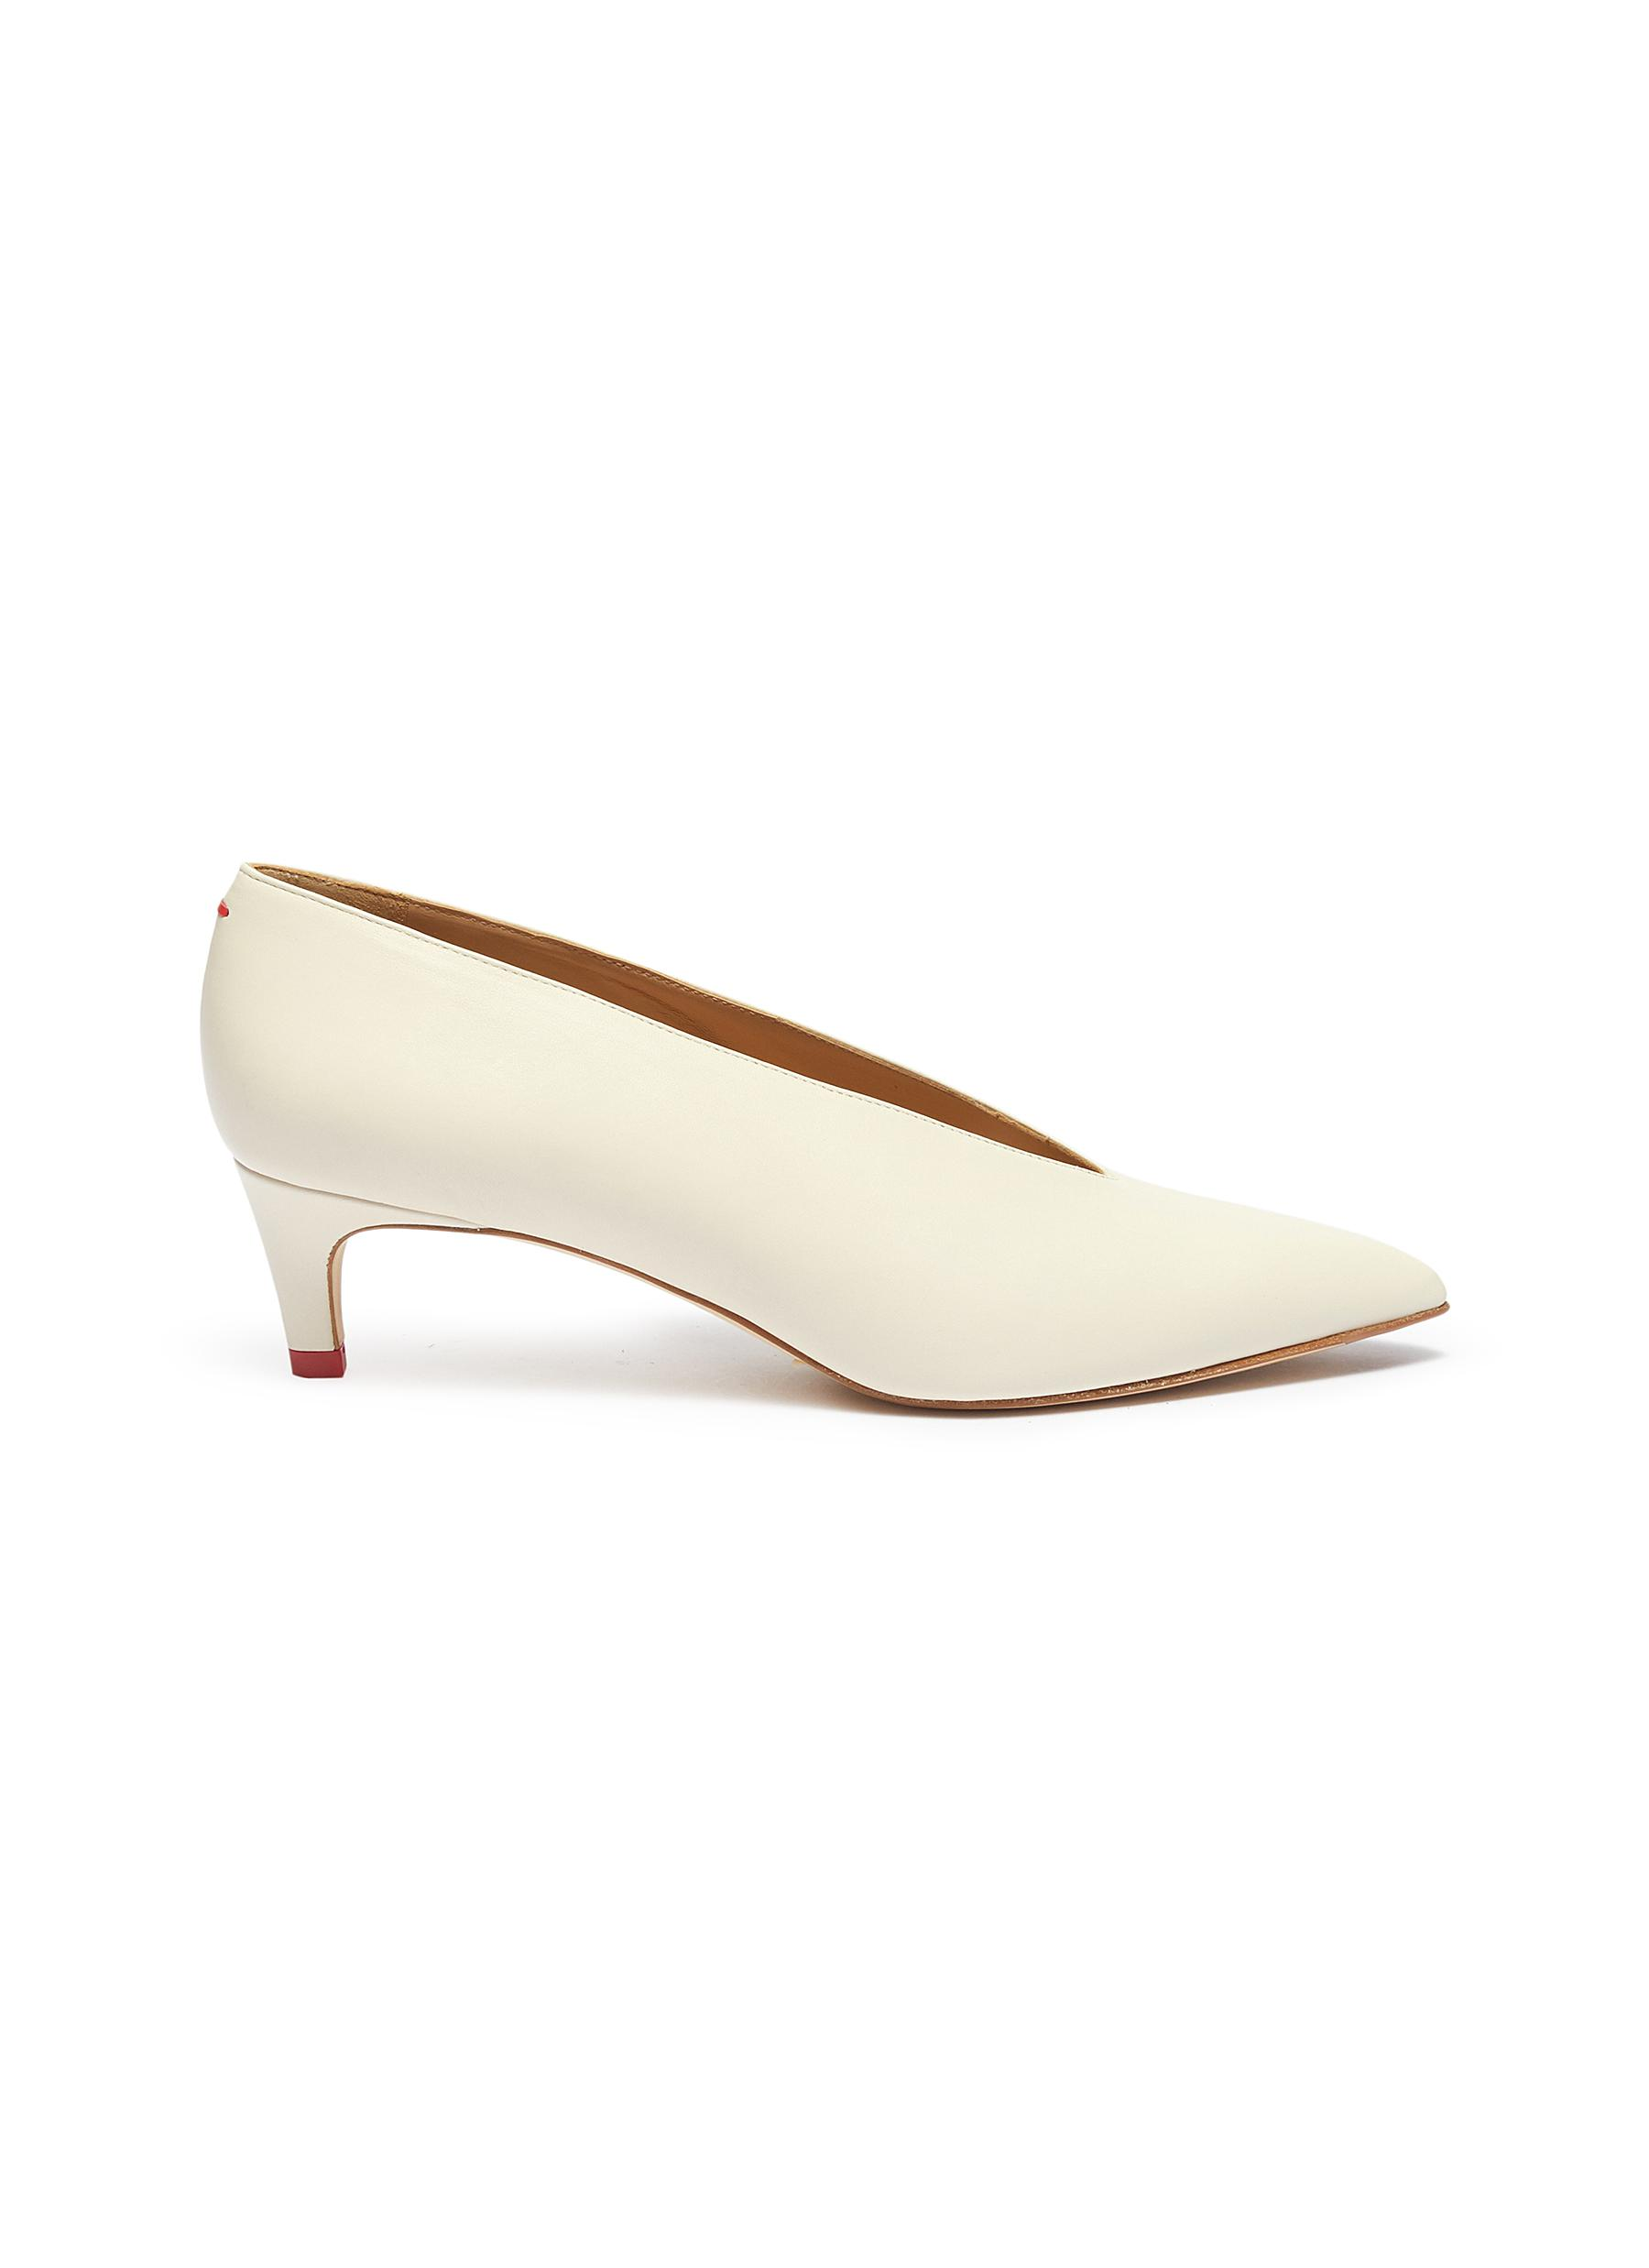 Camilla choked-up leather pumps by Aeyde